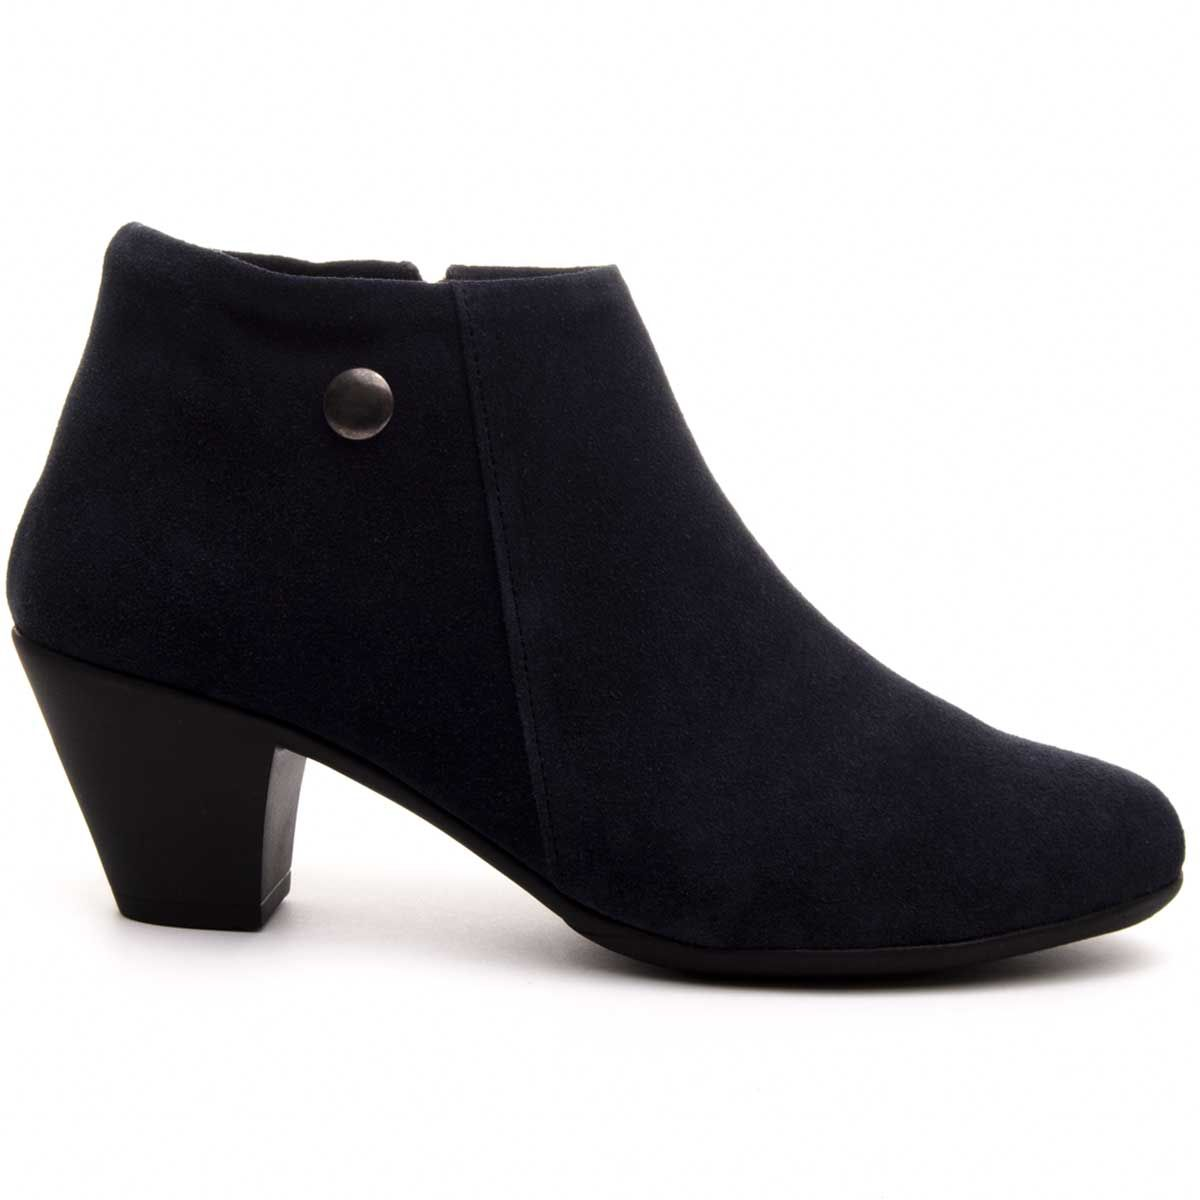 Purapiel Heeled Ankle Boot in Blue